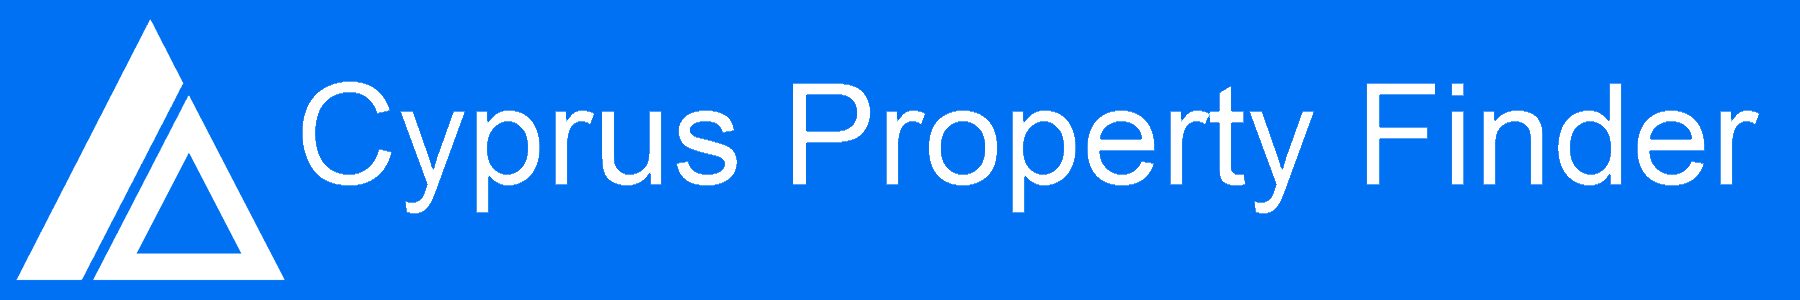 Cyprus Property Finder